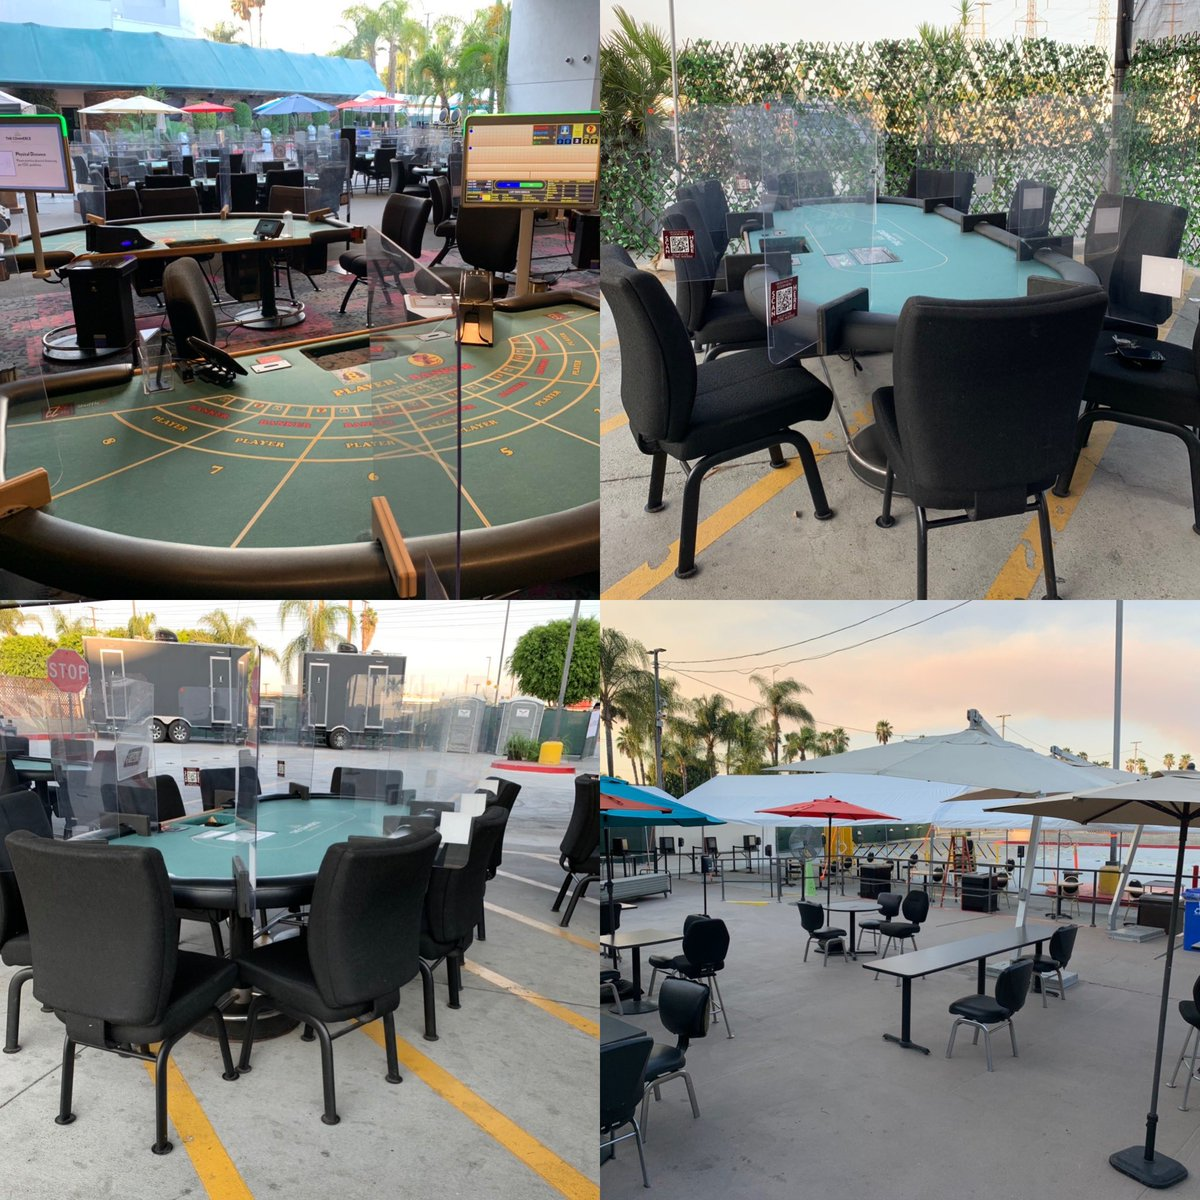 Commerce Casino On Twitter Thecommerce Reopens Tomorrow Monday October 5th At 8am Here Are A Few Pictures Of Our Outdoor Set Up Showing Some Poker And Baccarat Tables And The Physical Distanced